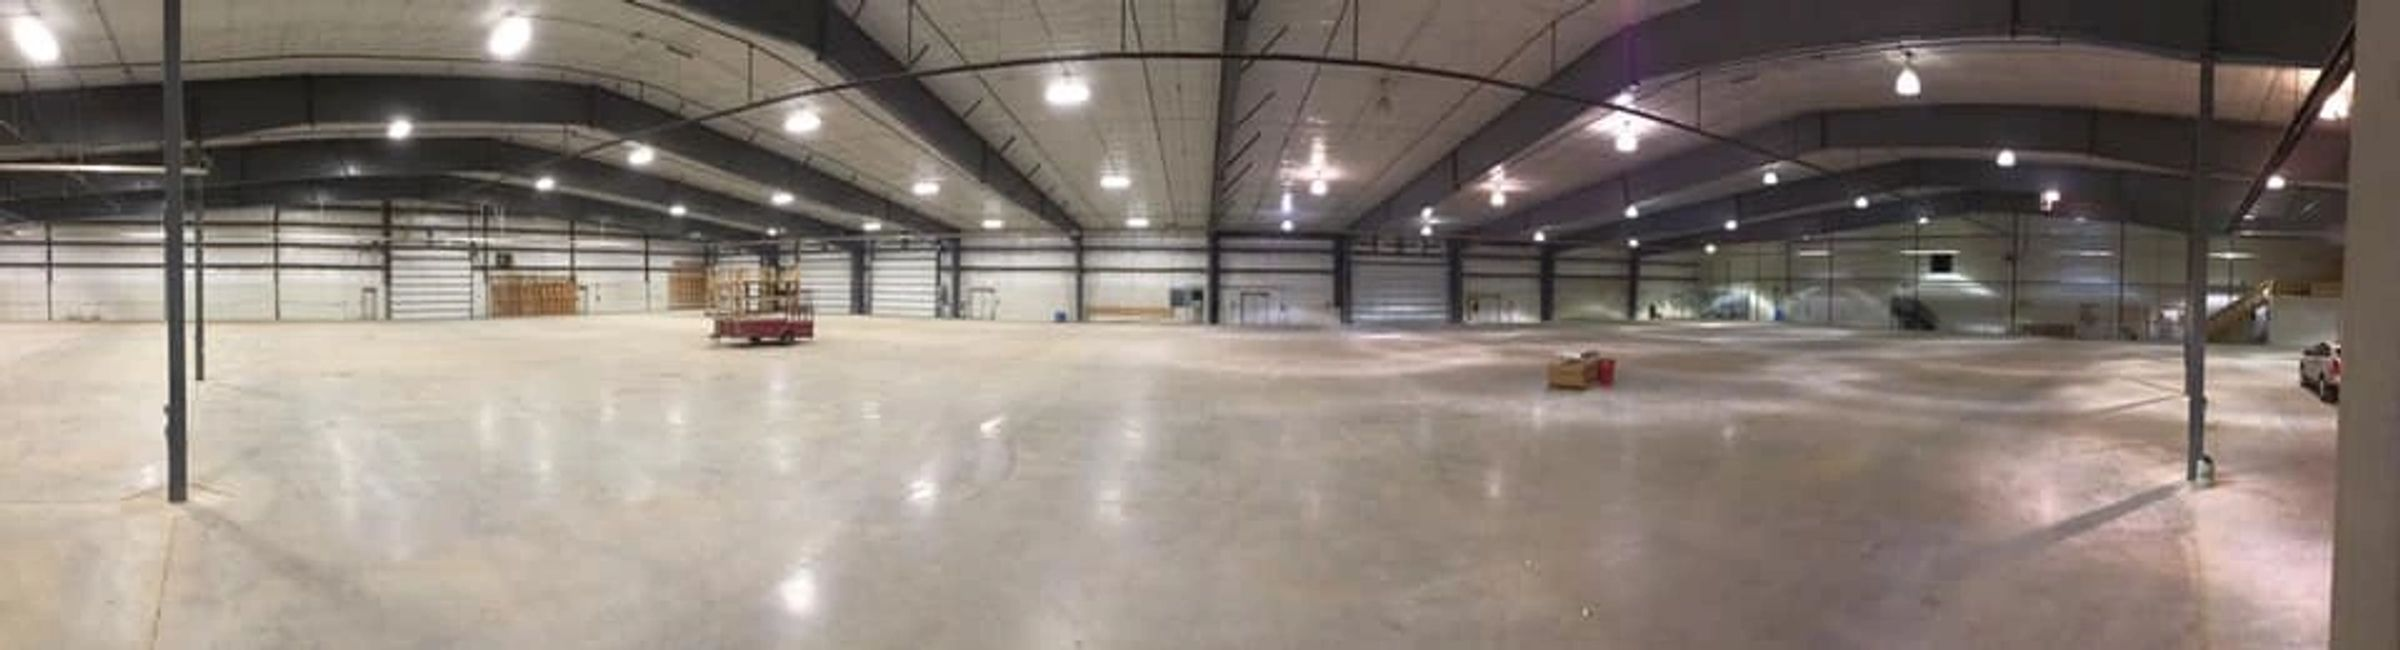 This is a commercial LED Lighting upgrade done by Mick's Electric in Rapid City SD.